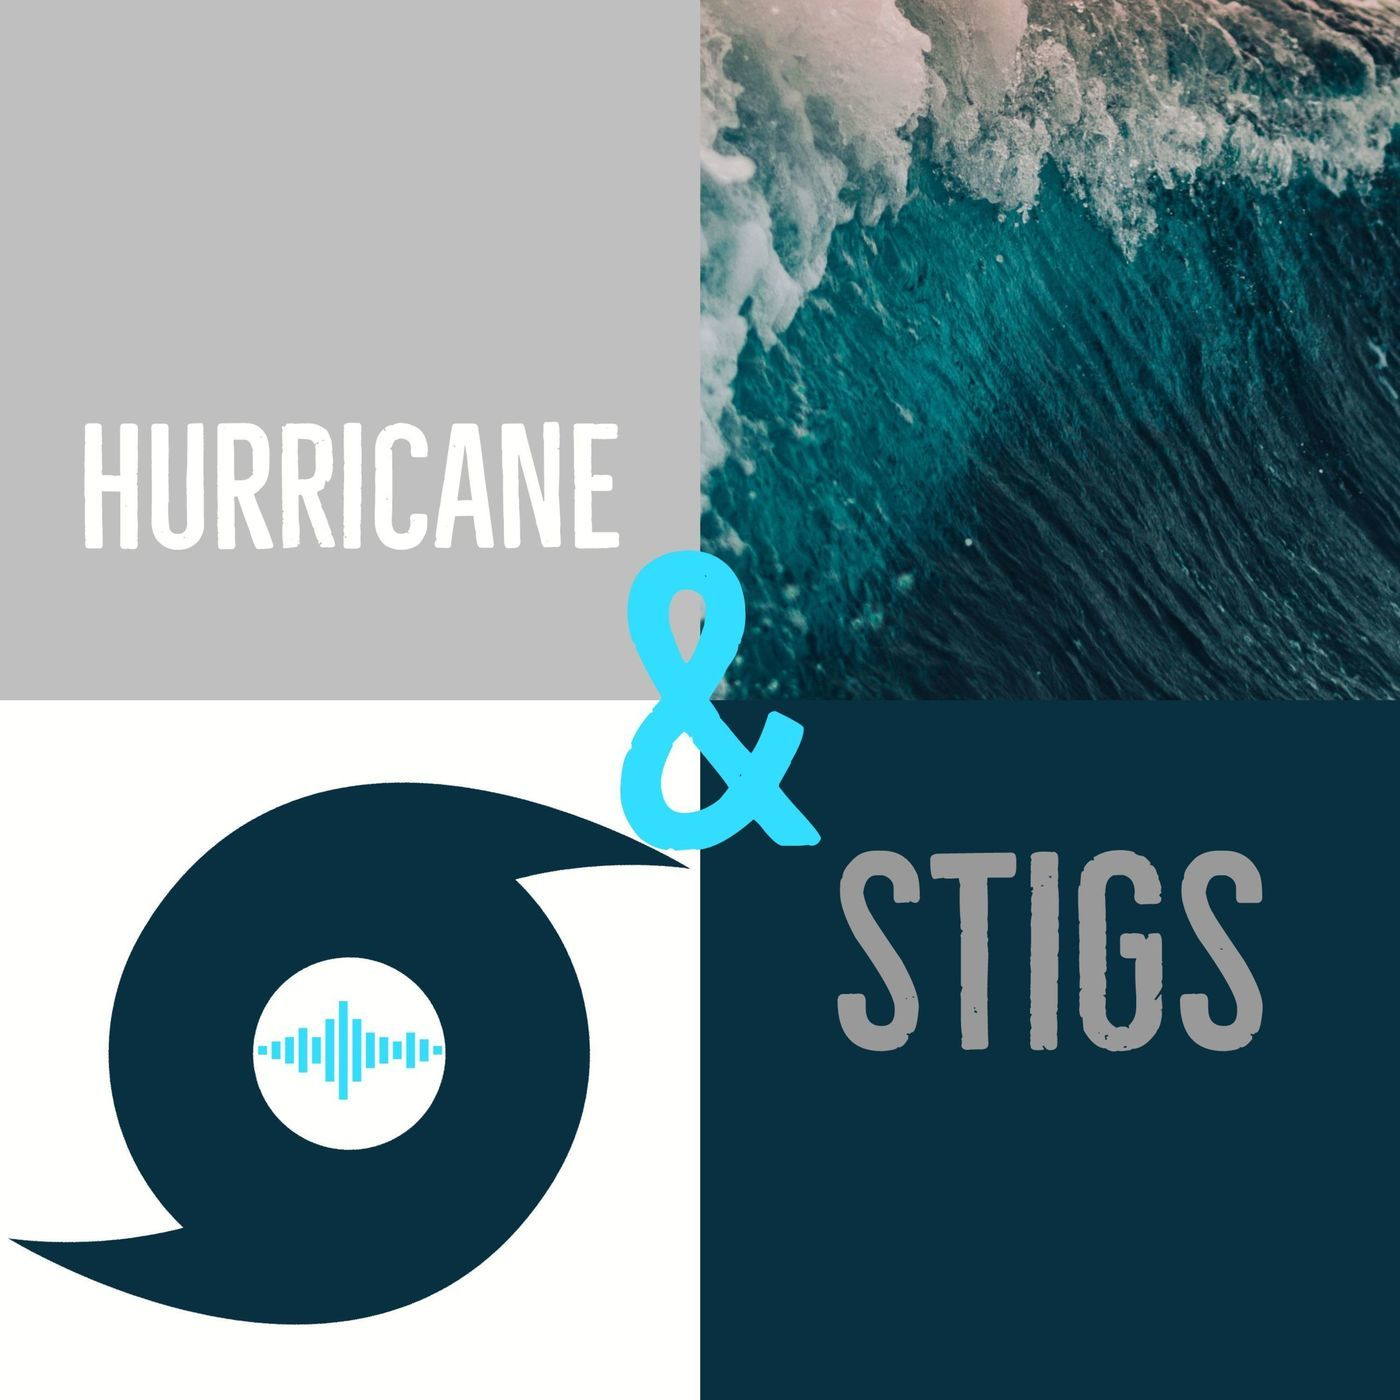 Image of: Oscar Hurricane Stigs Fireside Hurricane Stigs Episode 8 Anonymous First Quote And Resolutions